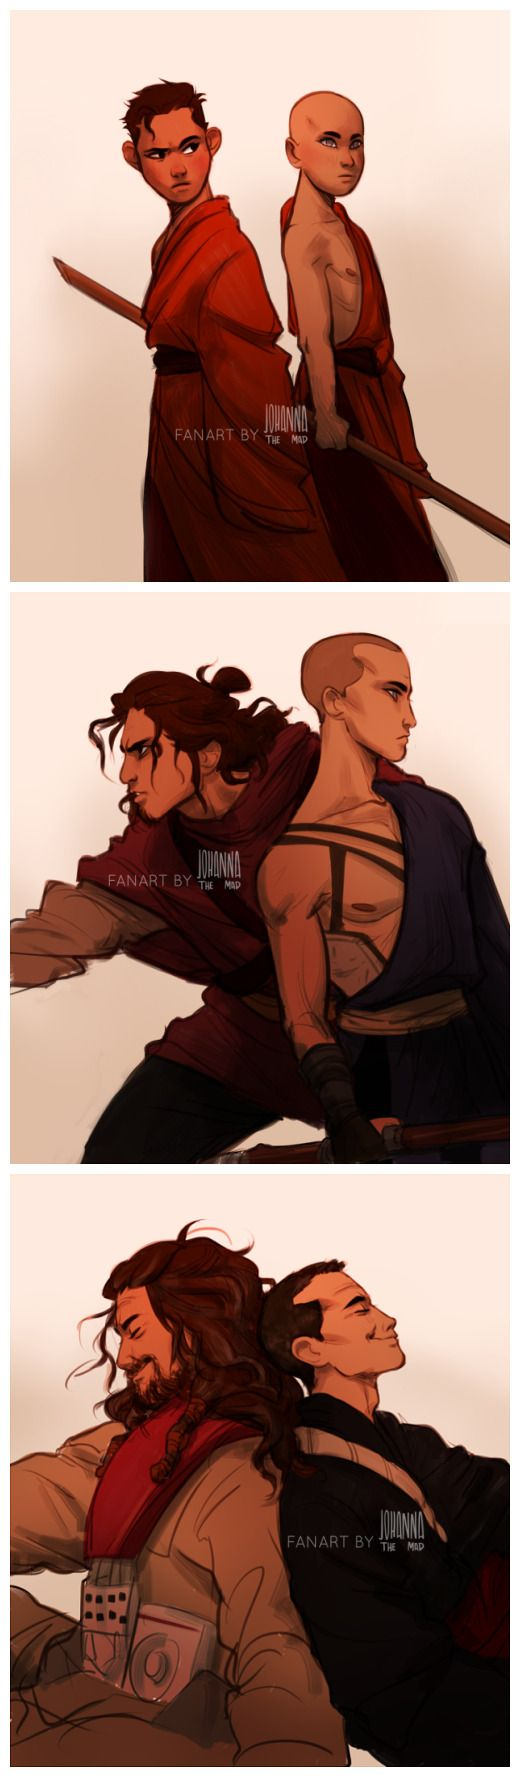 My brother thought this was some weird fan art of Sokka and Aang  (So sweet though!)